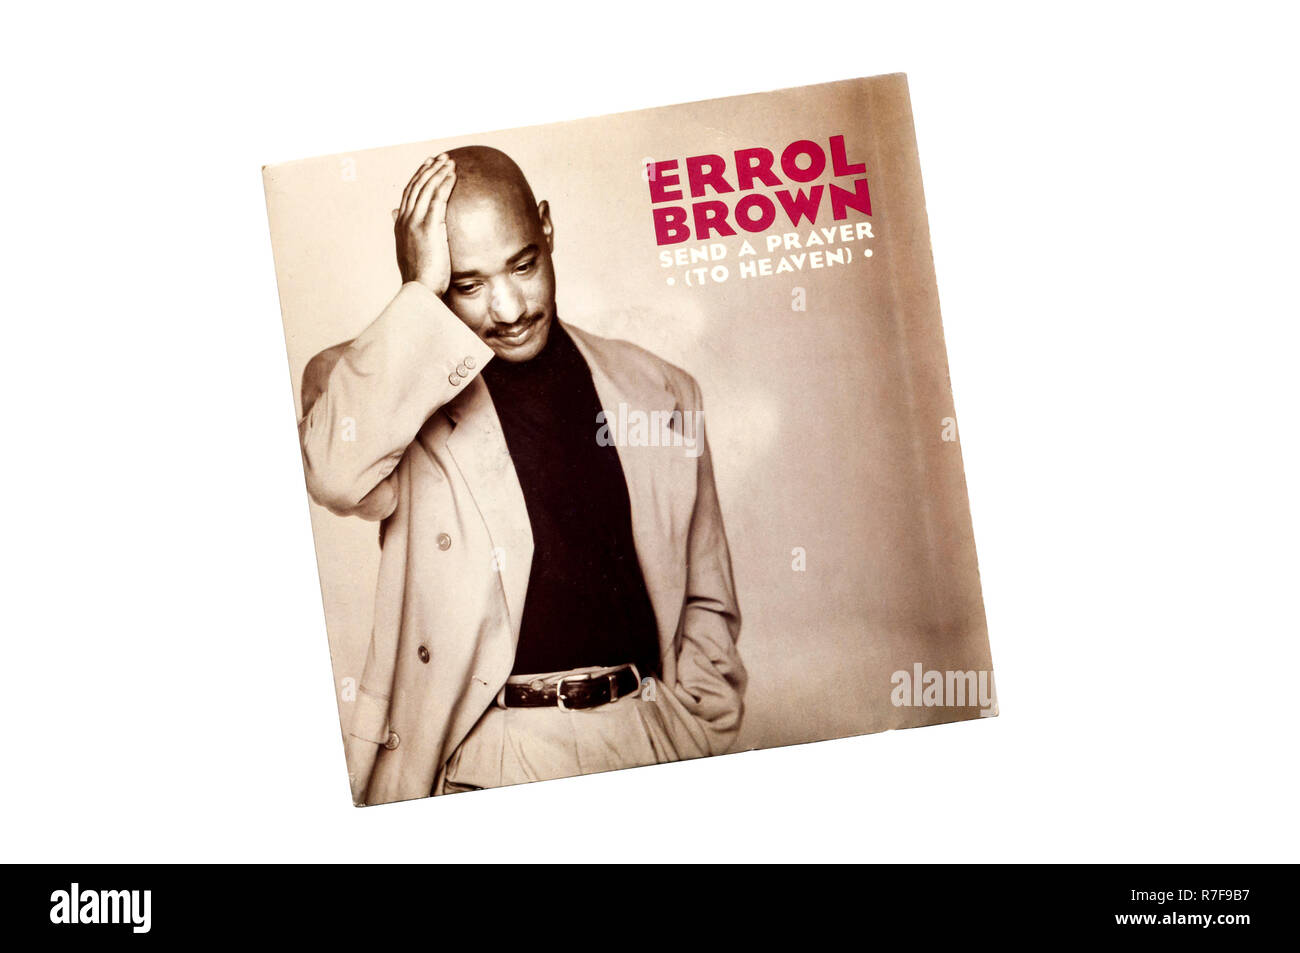 1990 7' single, Send a Prayer ( To Heaven ) by Errol Brown. - Stock Image